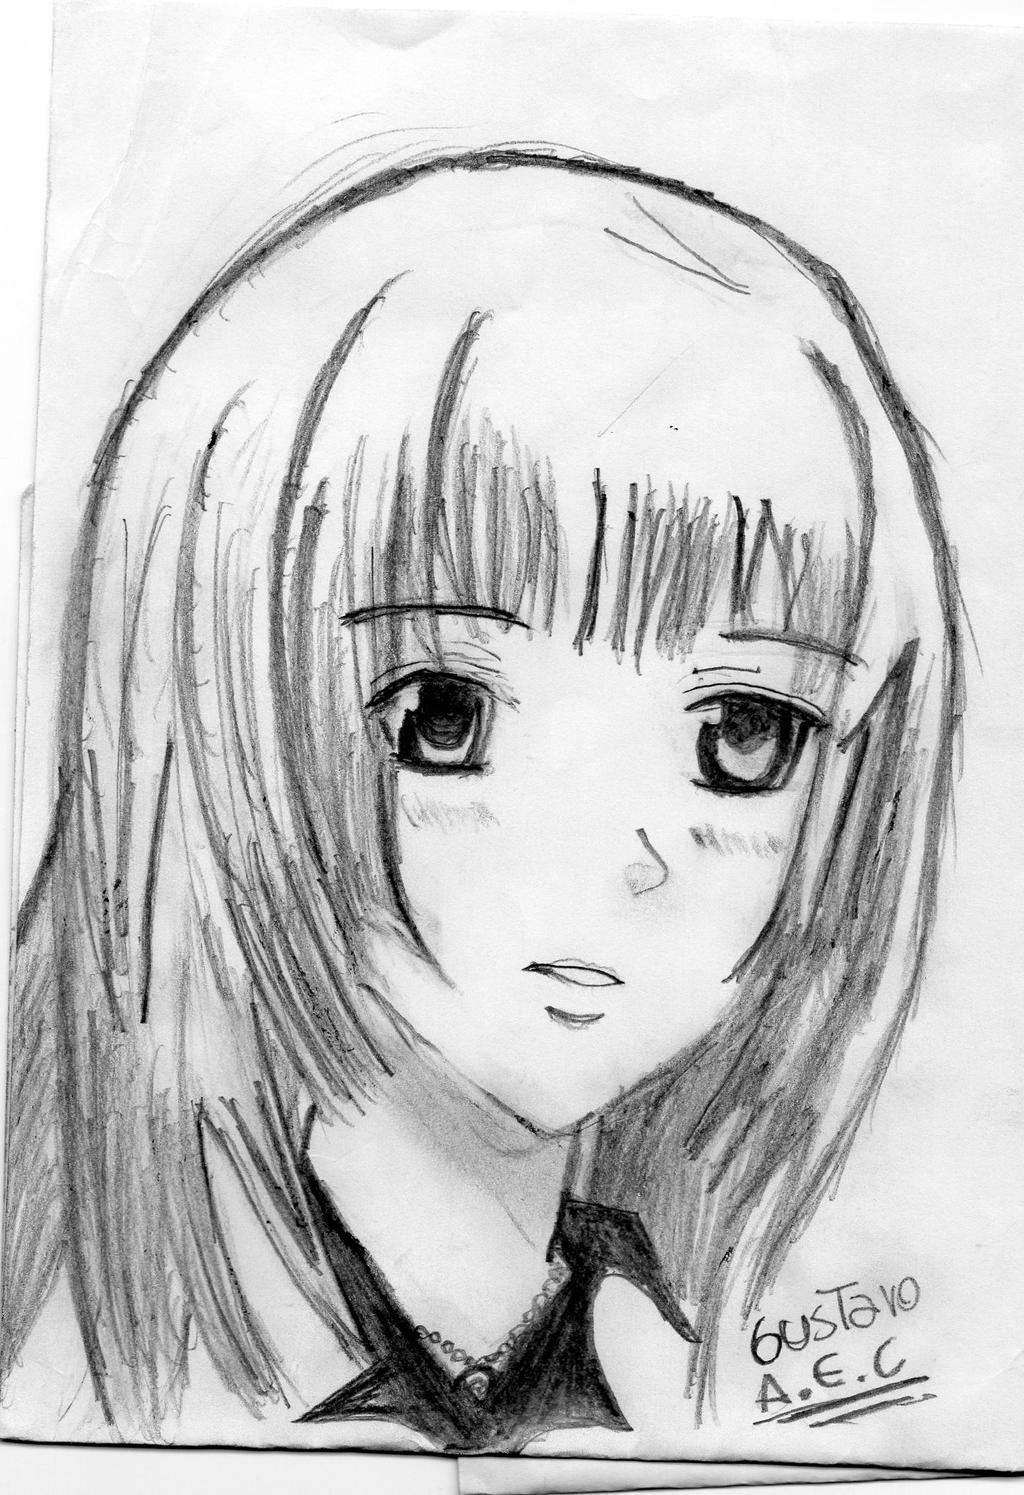 Maria Kurenai Vampire Knight Manga By Tavo97 On Deviantart